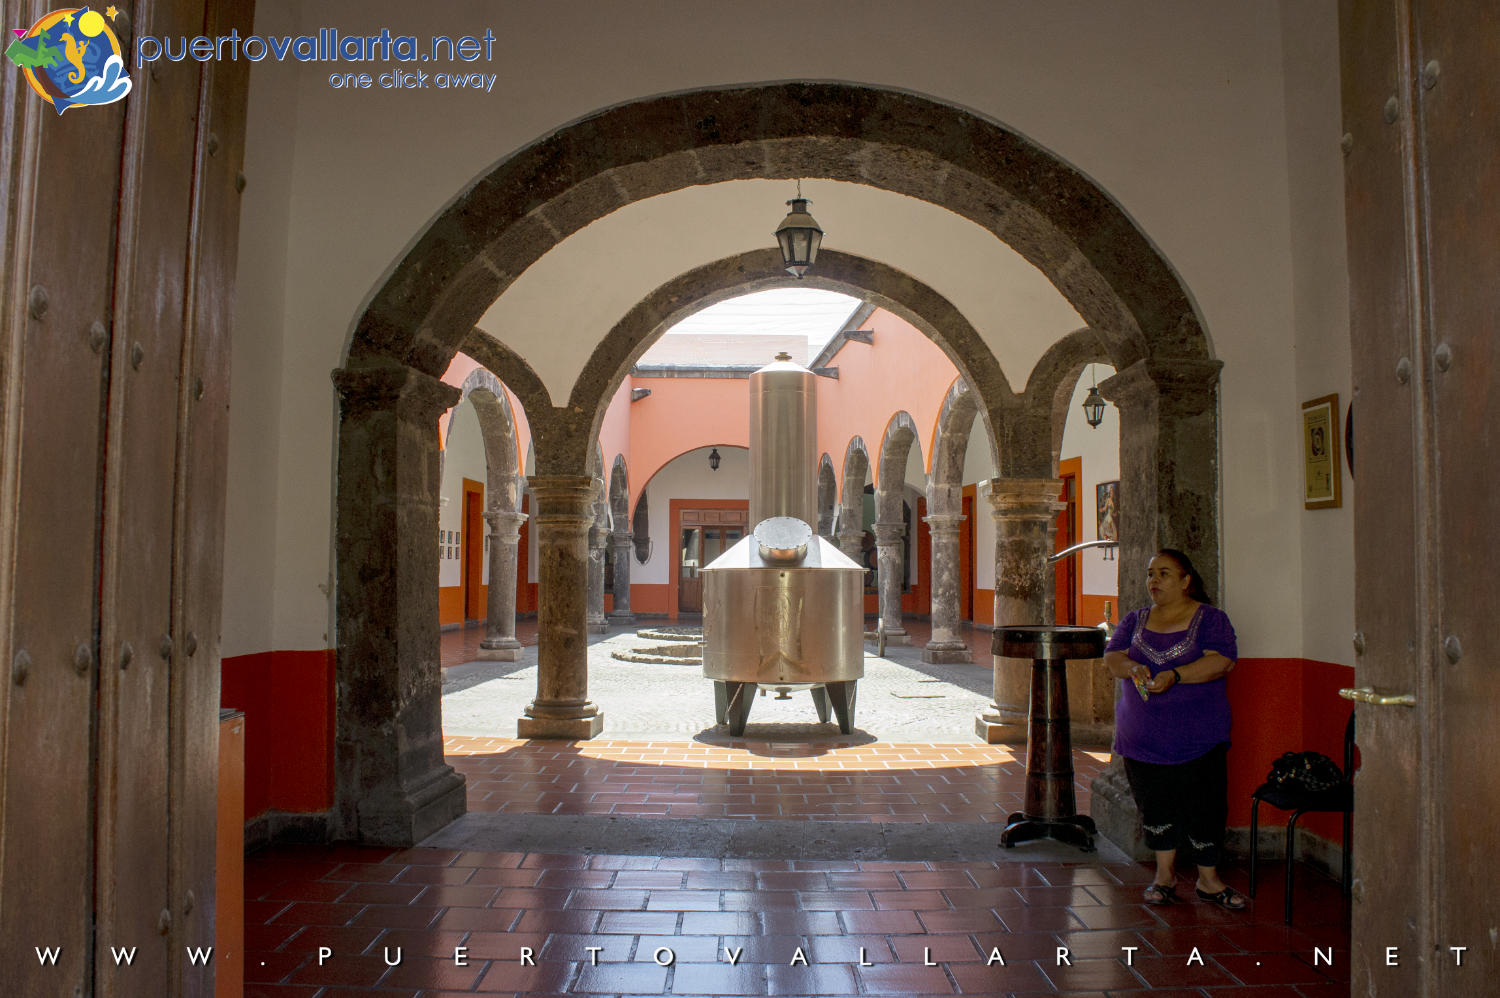 Interior Tequila Museum (Museo del Tequila)